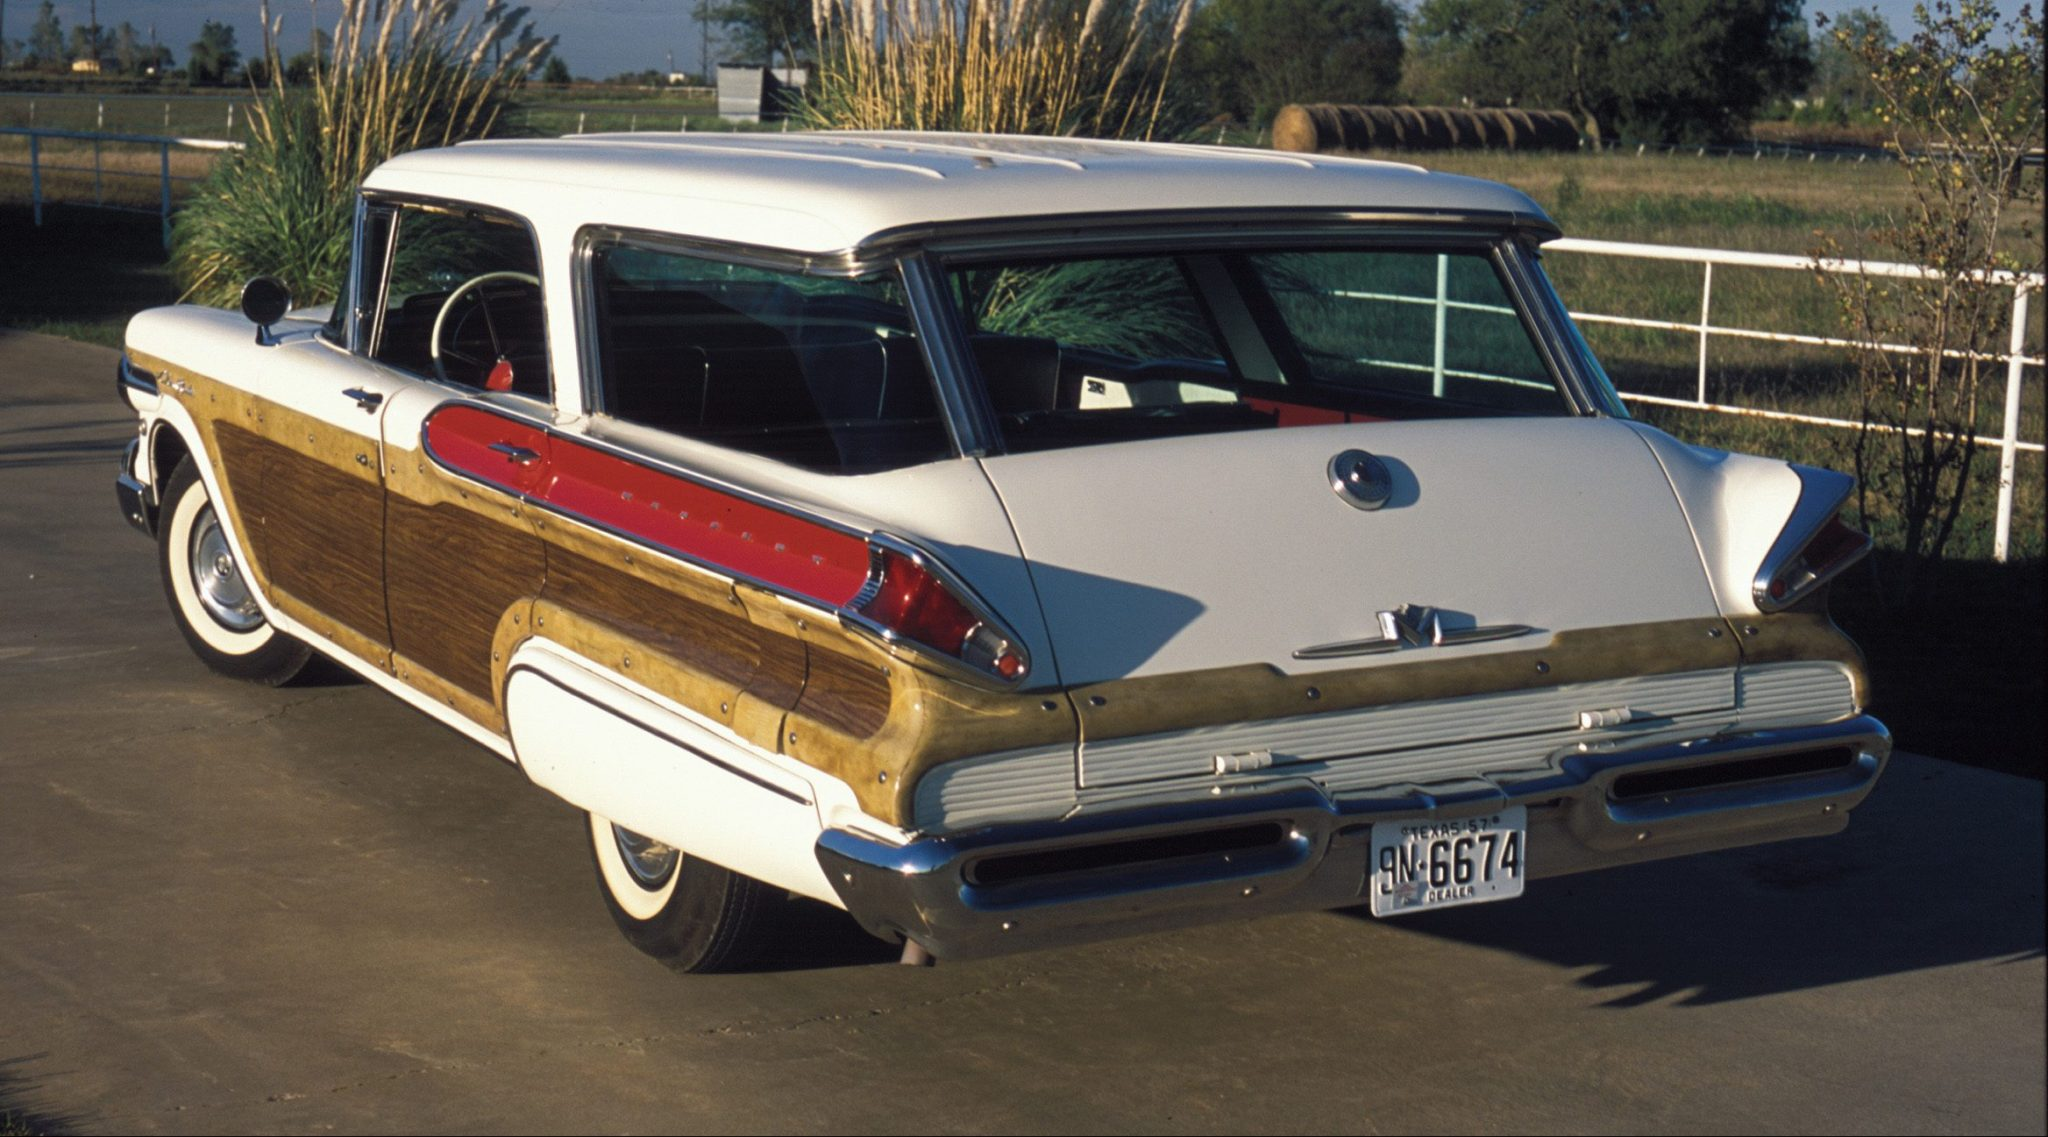 1957 Mercury Colony Park Rear View